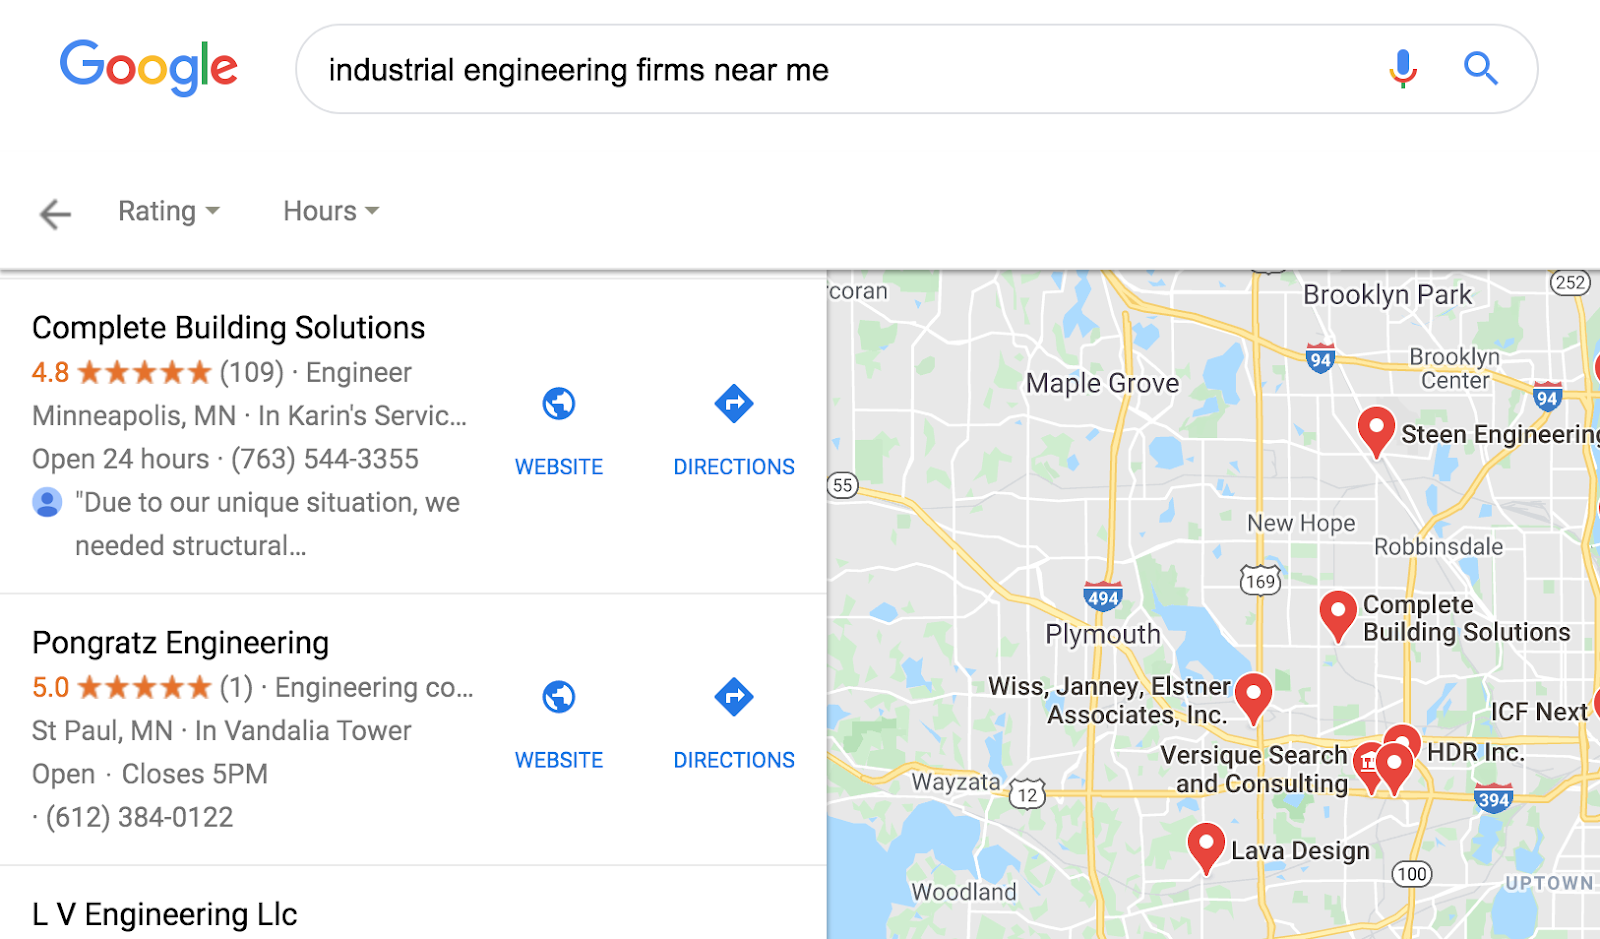 Industrial engineering firms near me